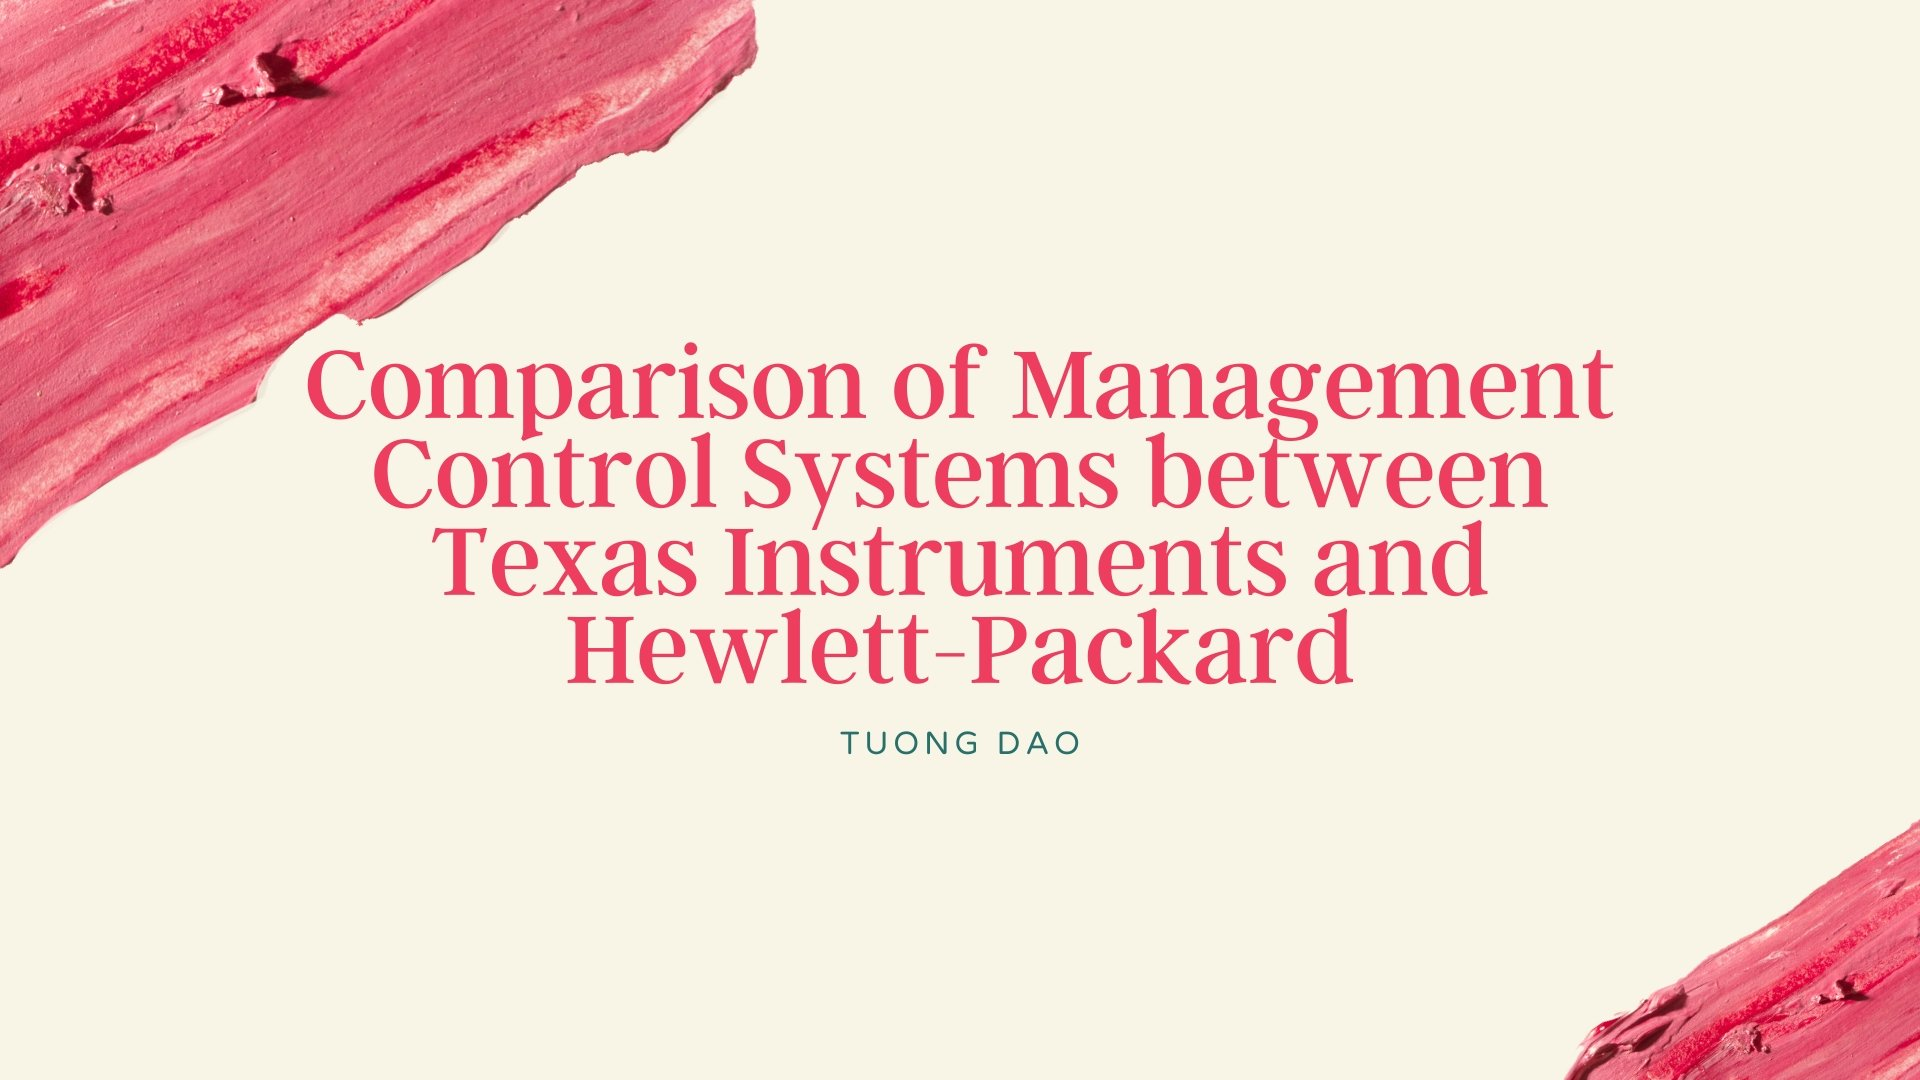 Comparison of Management Control Systems between Texas Instruments and Hewlett-Packard